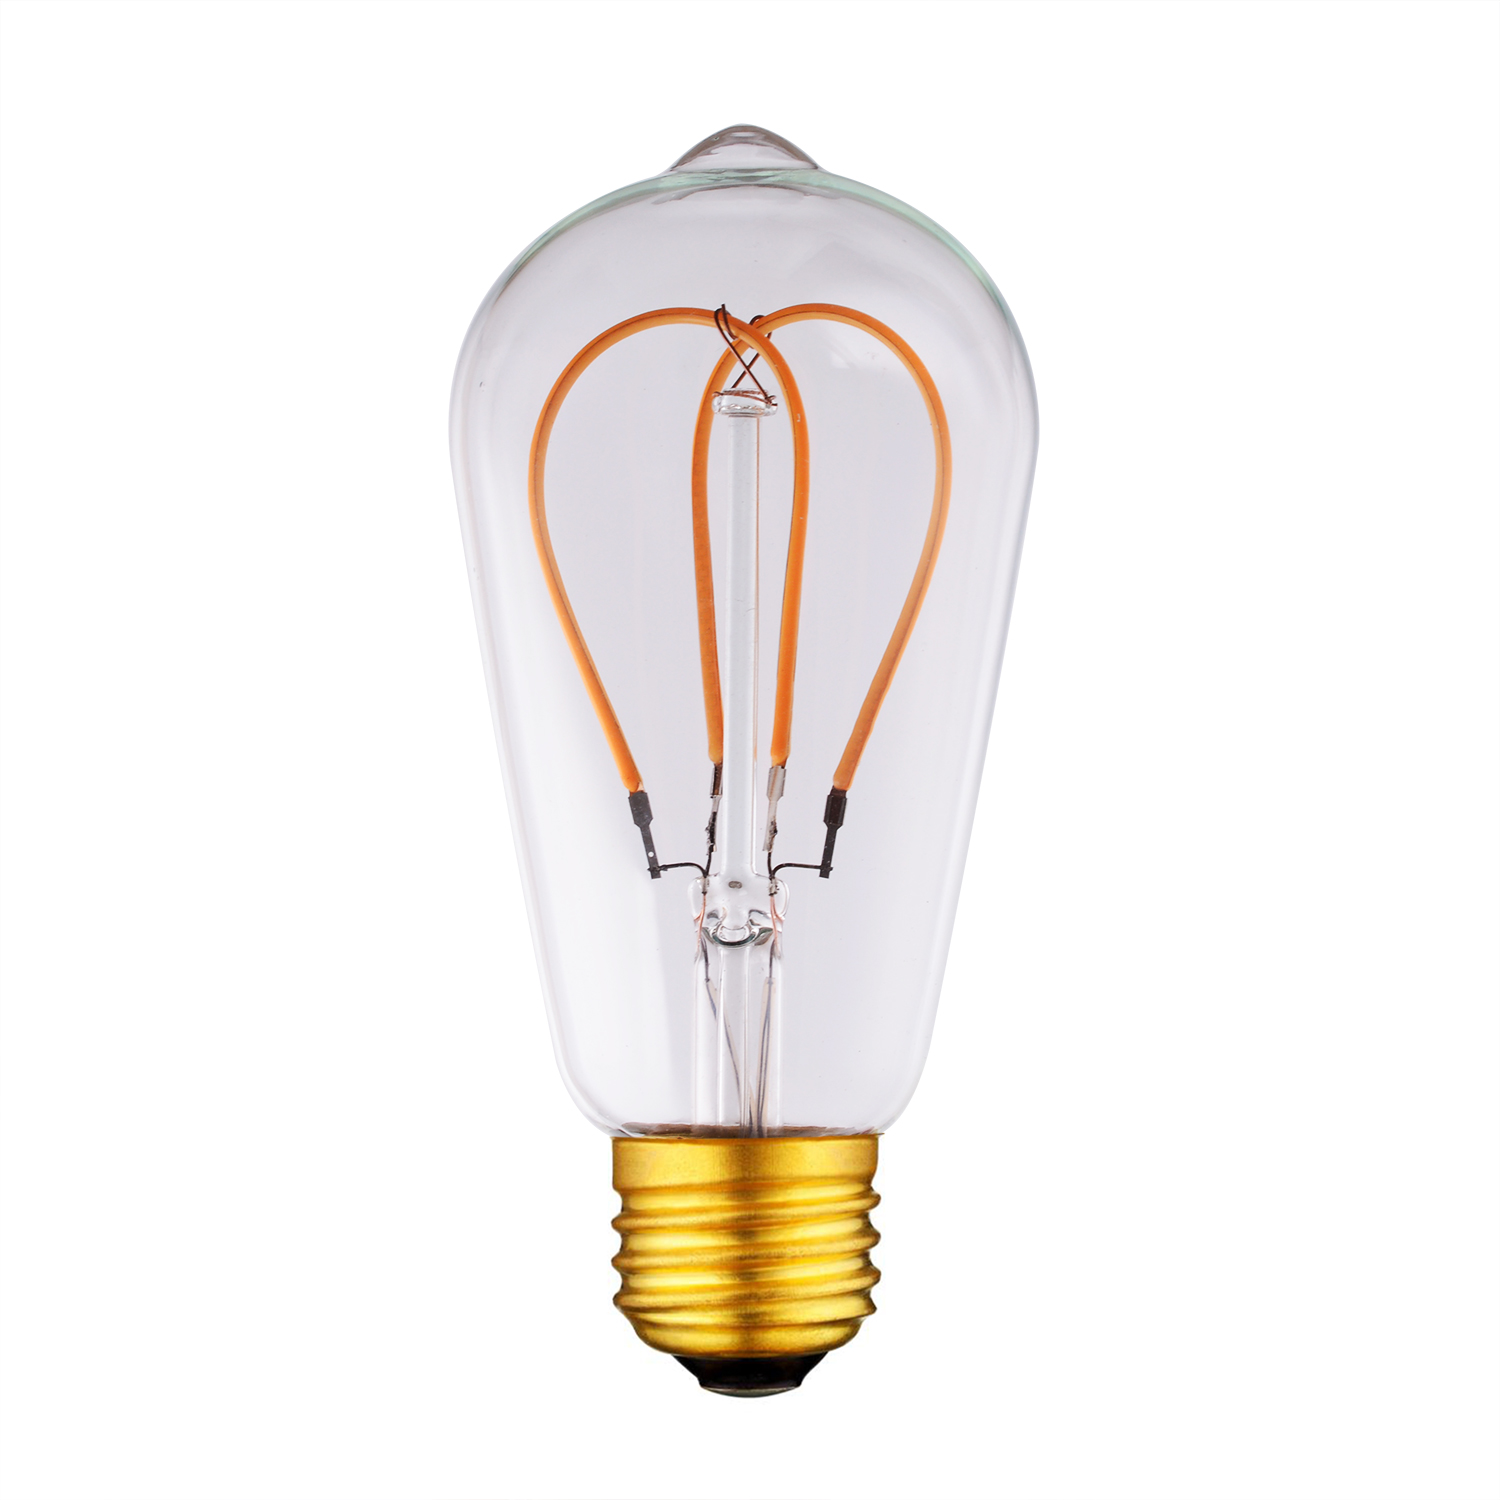 ST64 Heart Bulb Filament led curved bulb